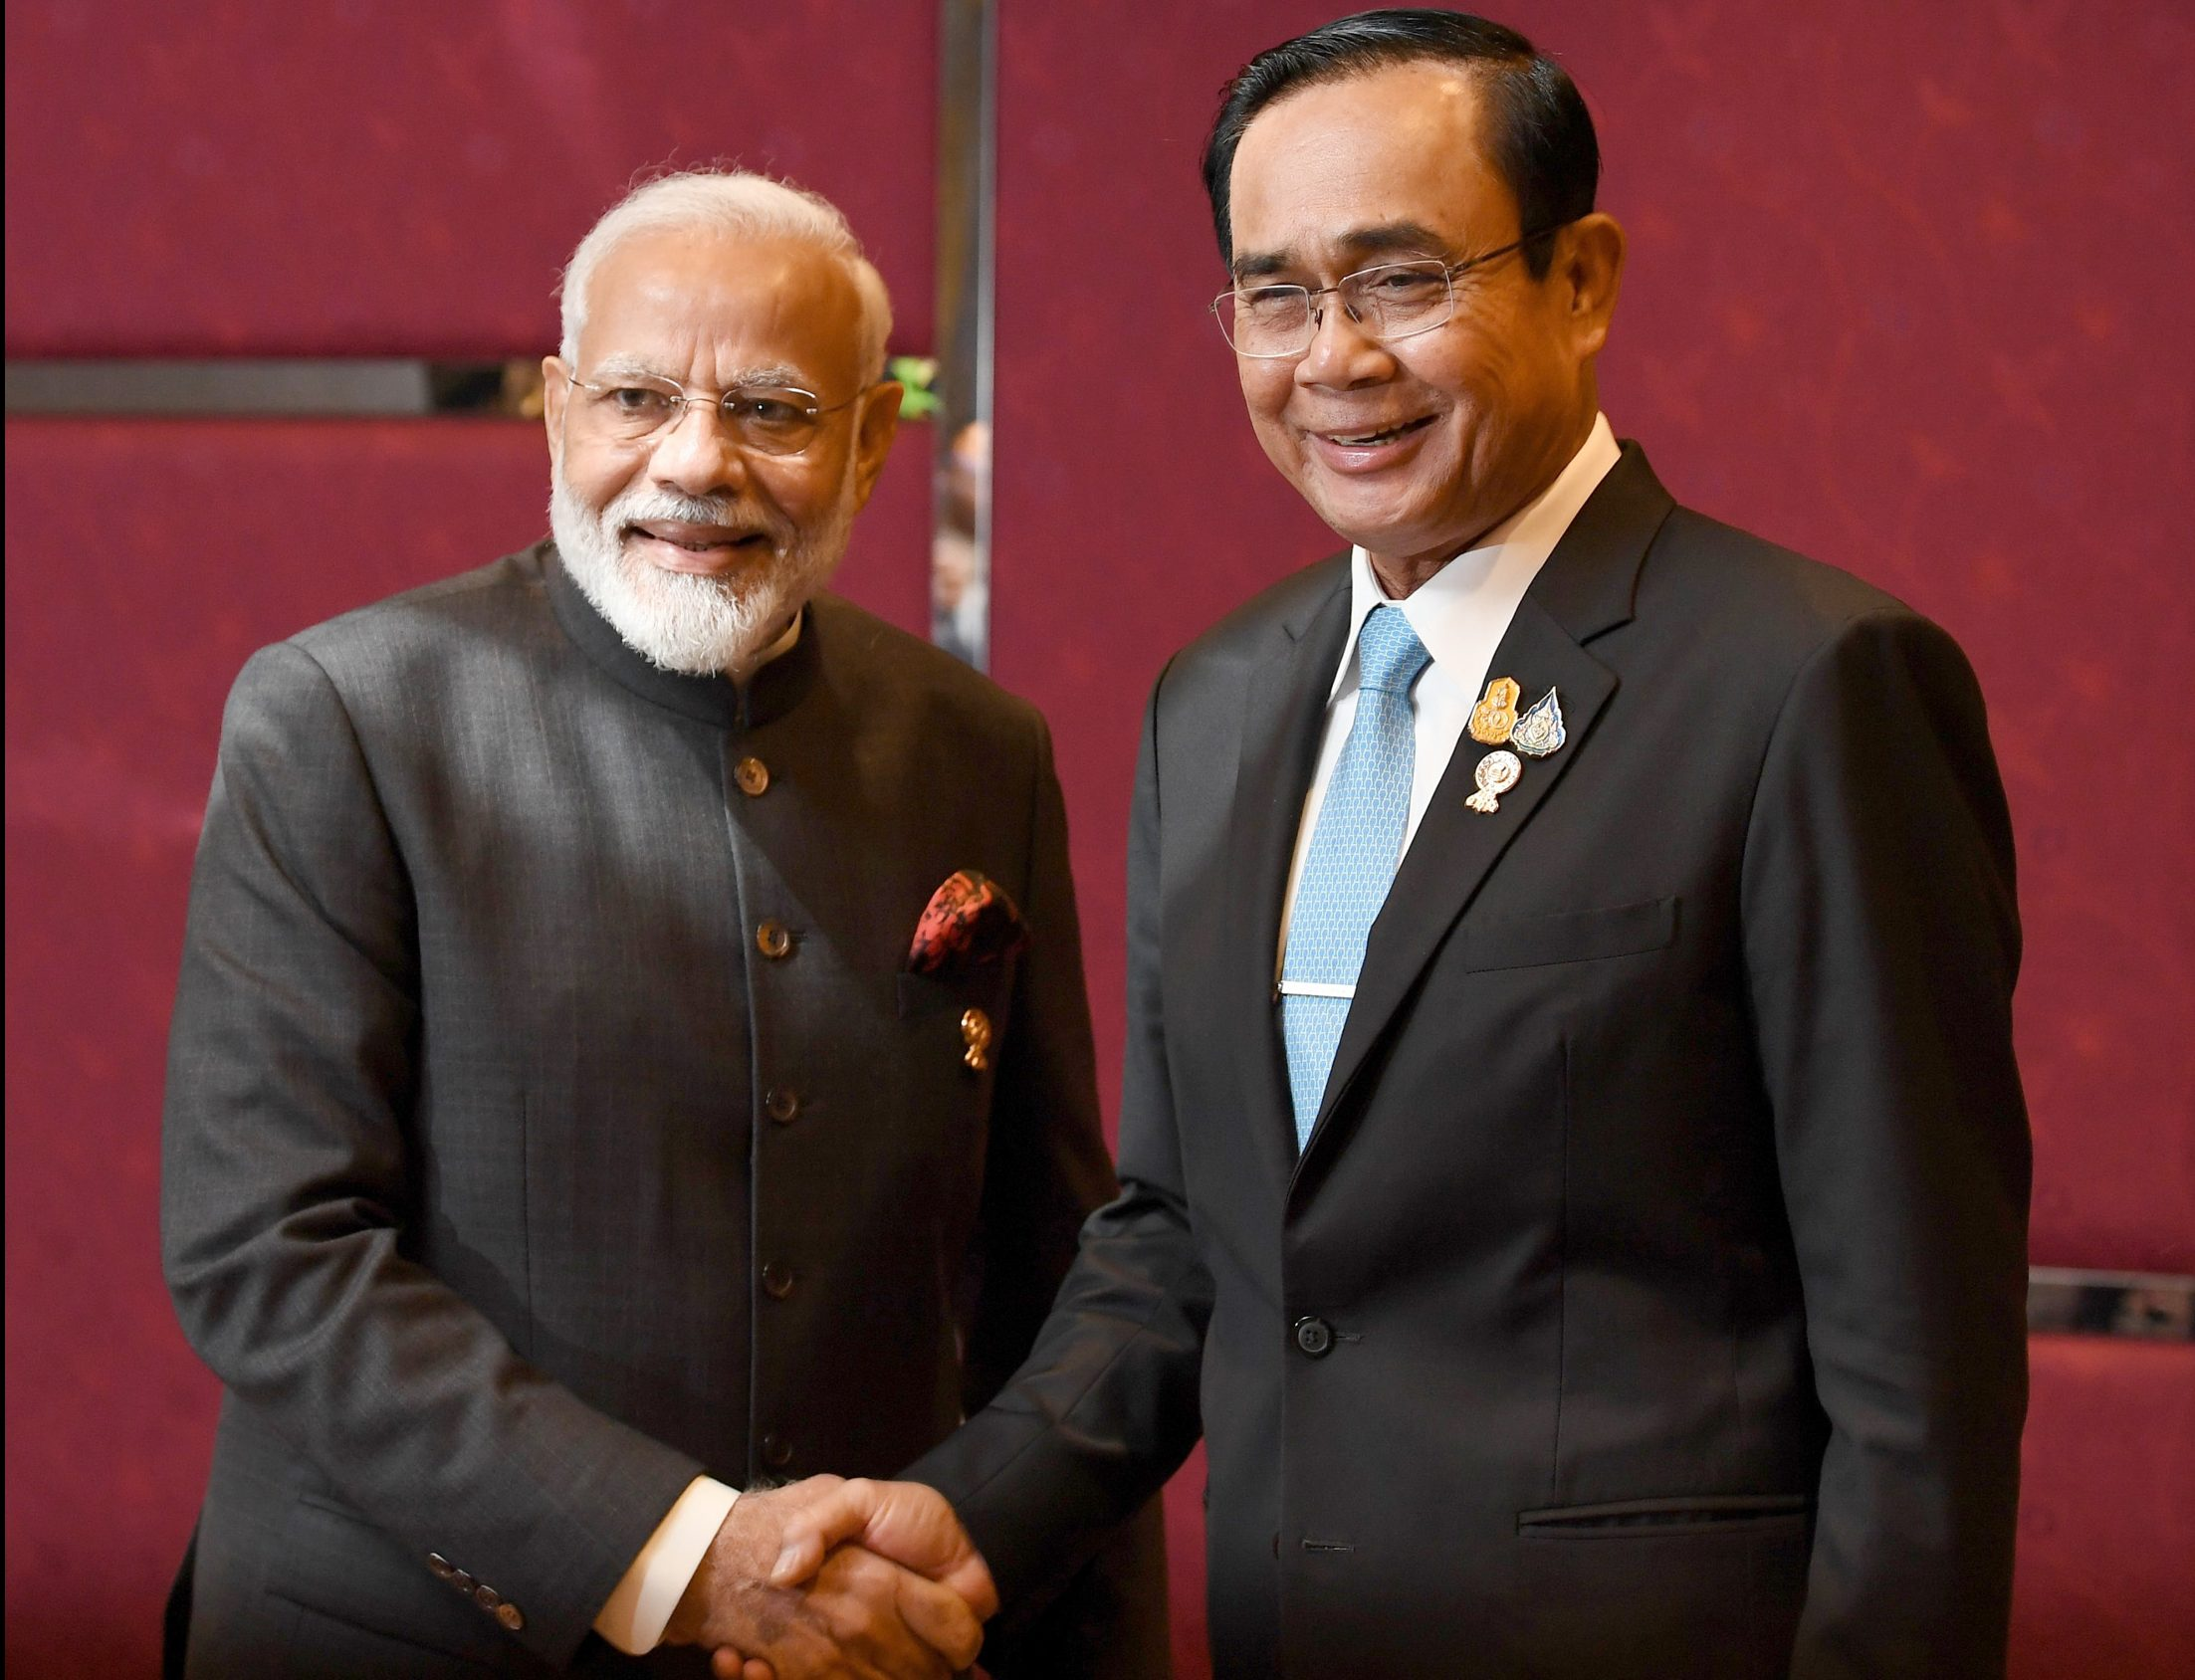 PM's meeting with the PM of Thailand